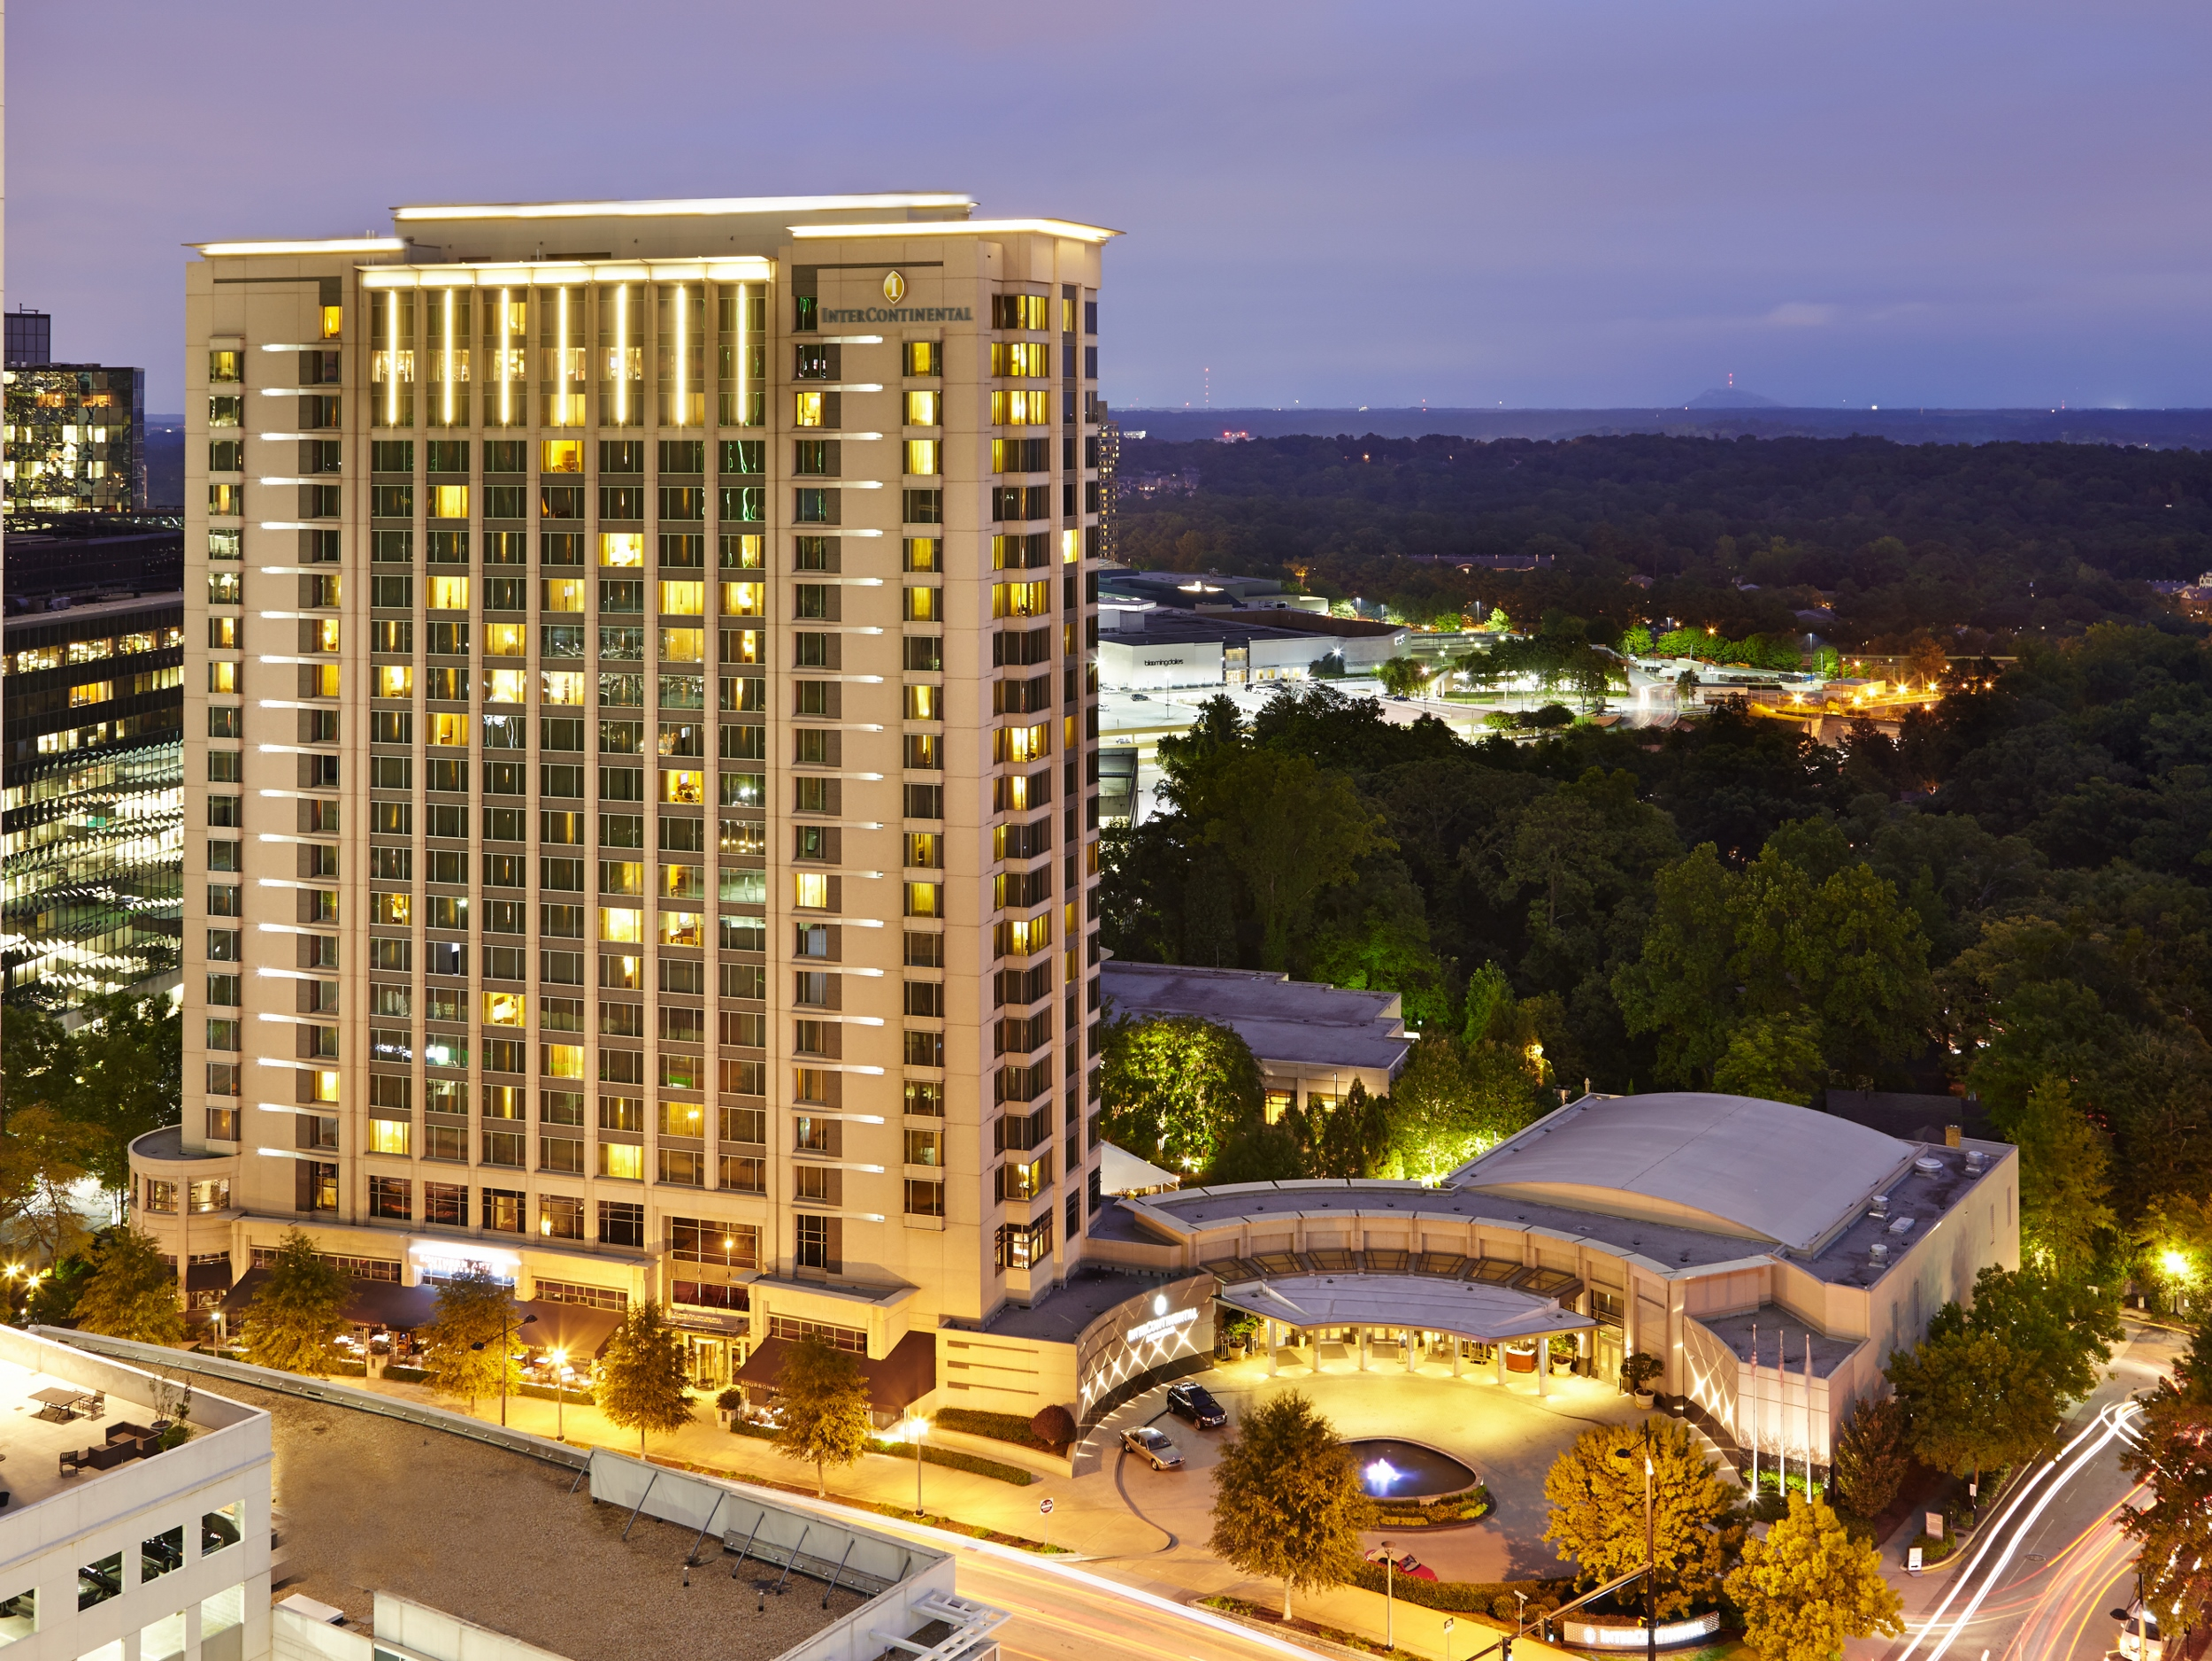 Ociated Luxury Hotels International Alhi Augments Portfolio In Atlanta Georgia Intercontinental Buckhead Joins Collection